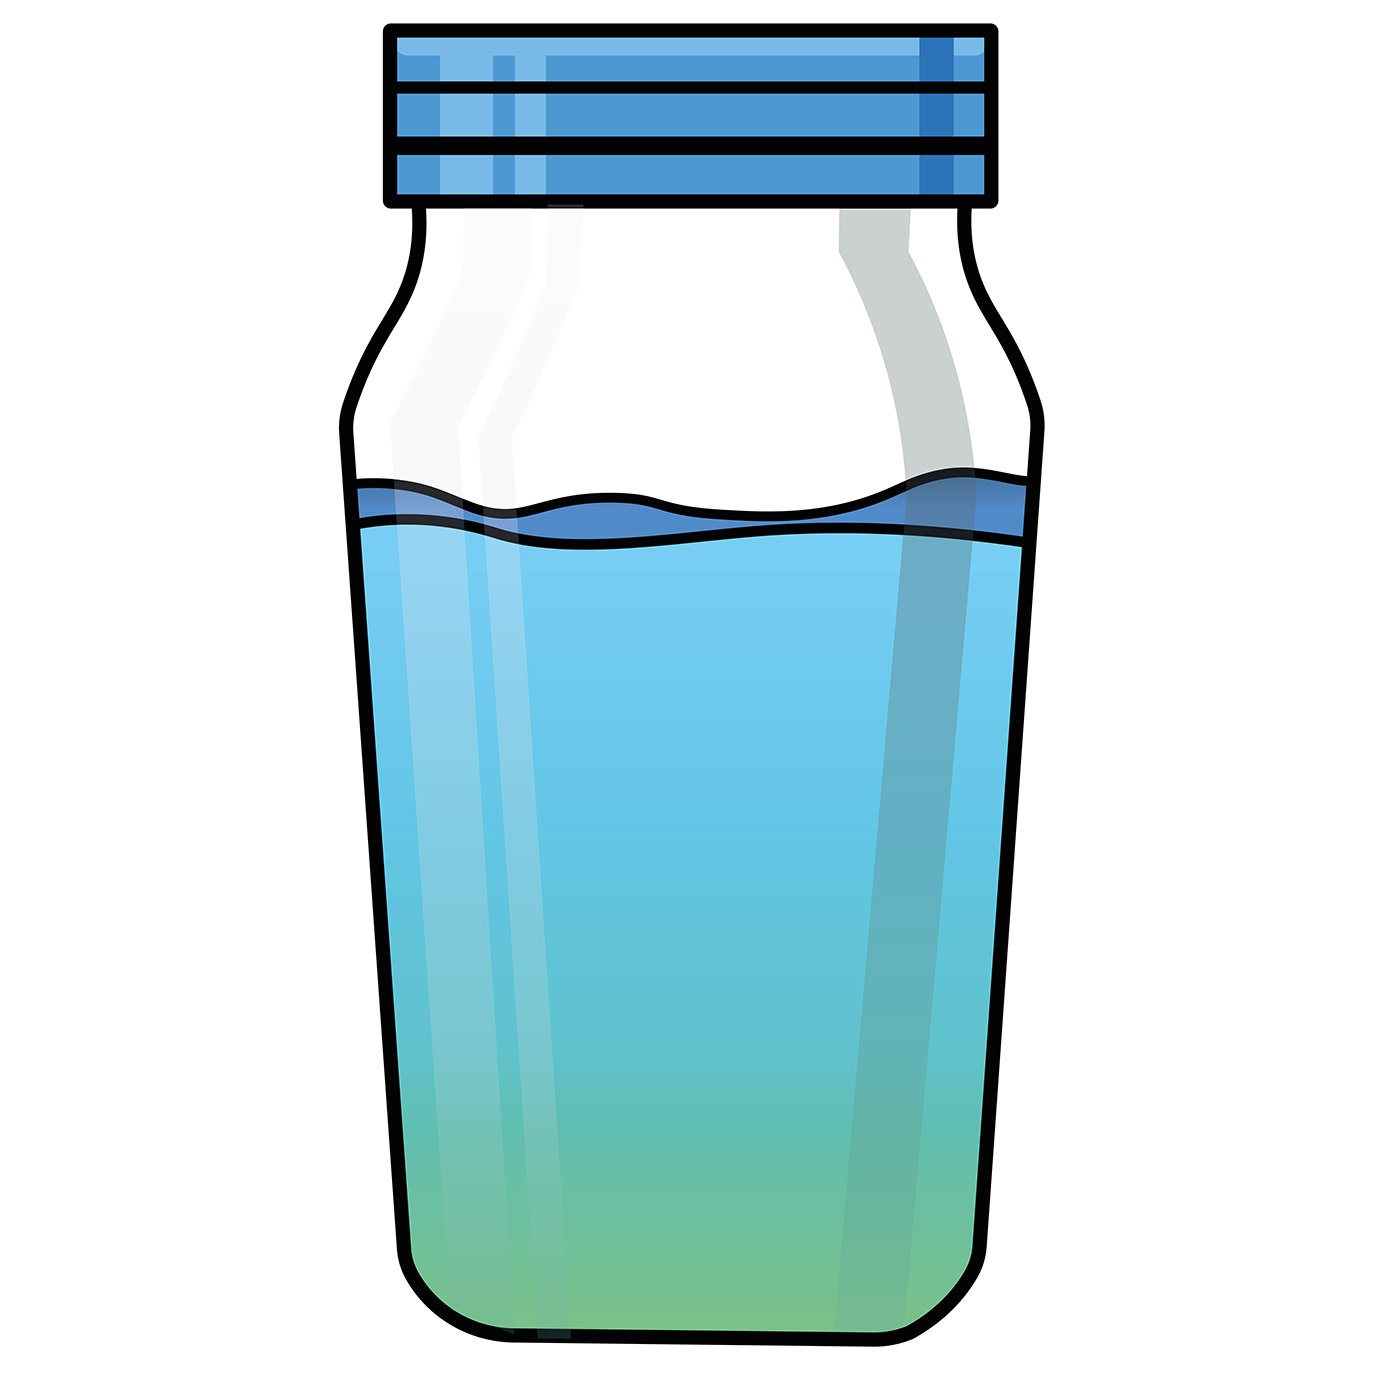 Water clipart juice, Water juice Transparent FREE for.